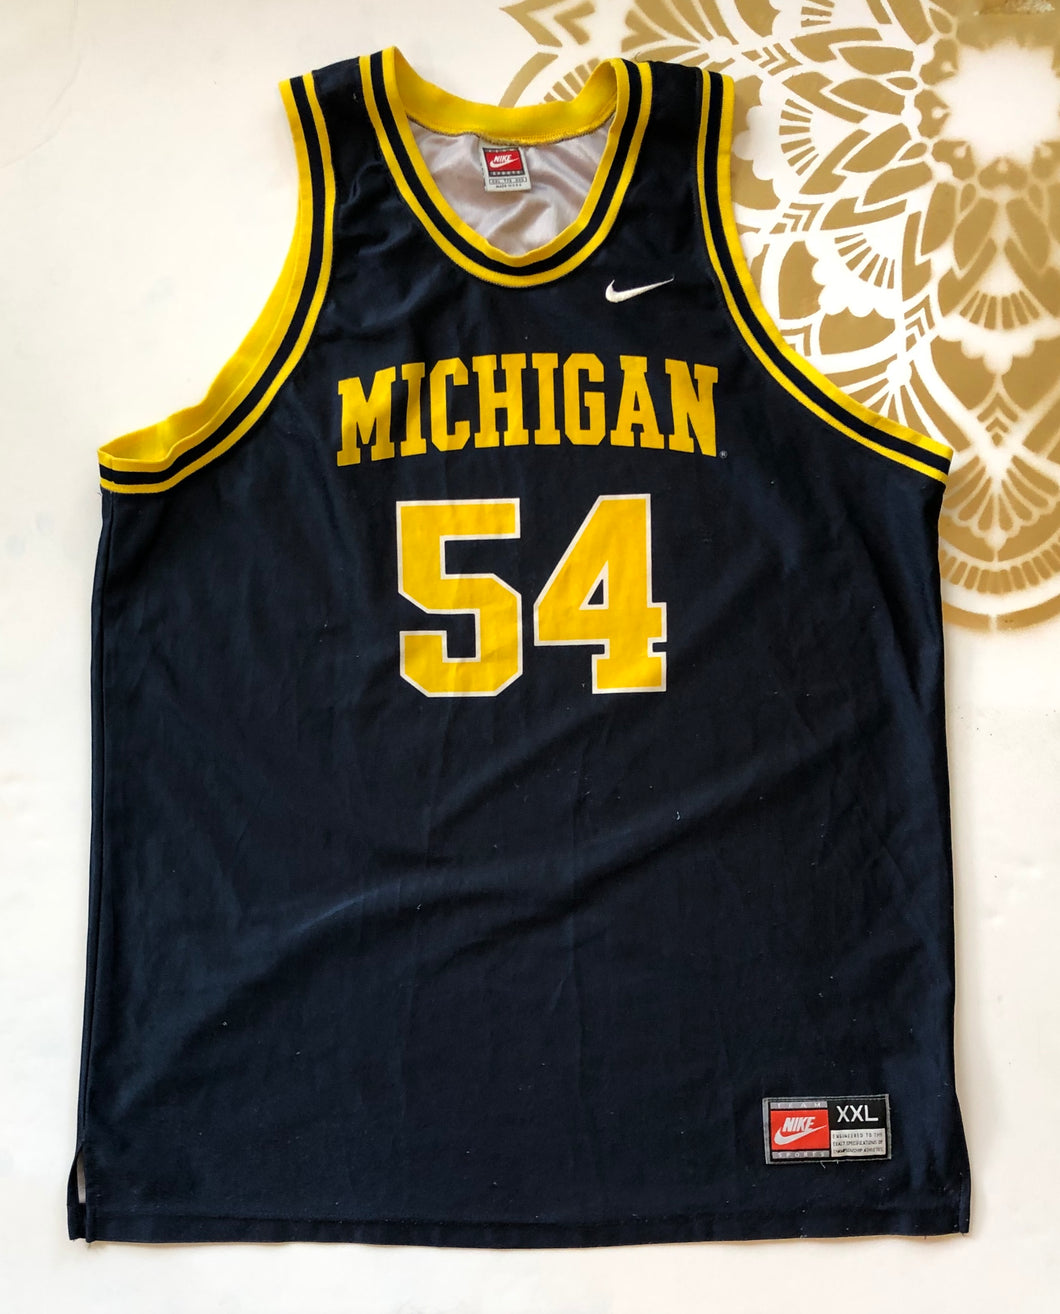 Michigan College Basketball Jersey - Ola Wyola